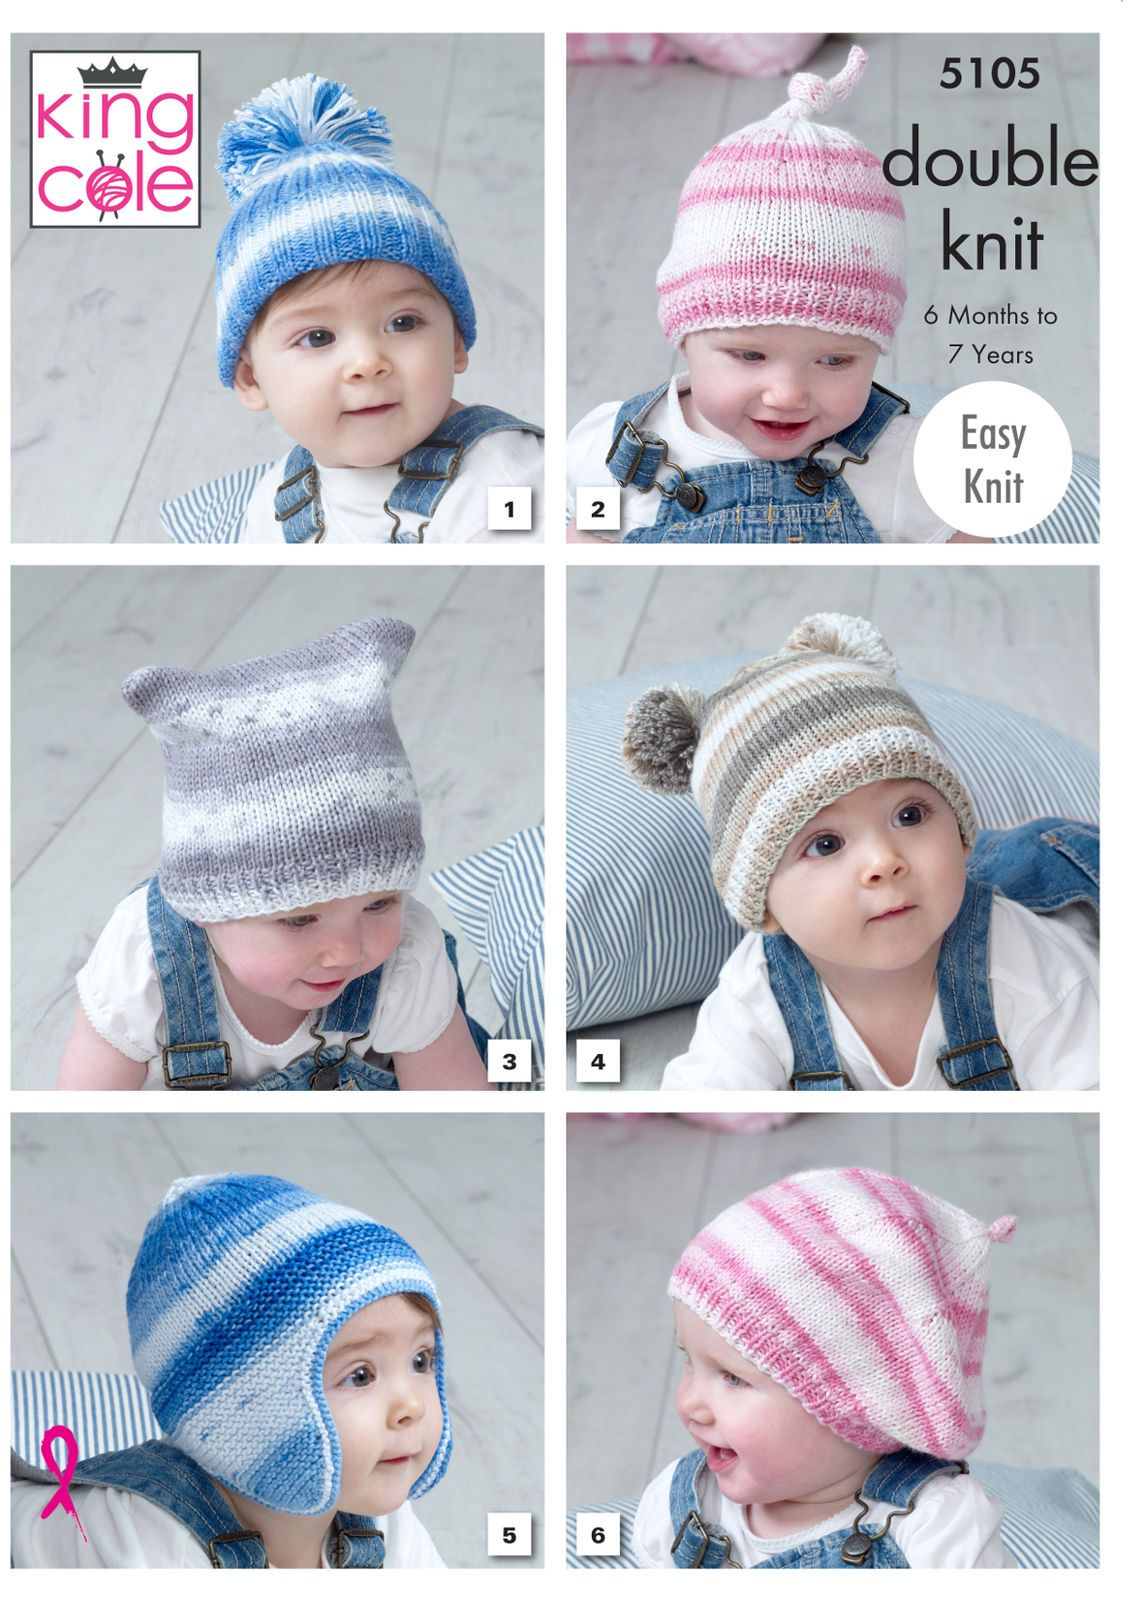 624f5a0eb89 £2.89 GBP - Baby Double Knitting Pattern Easy Knit Hats Helmet   Beret King  Cole 5105  ebay  Home   Garden